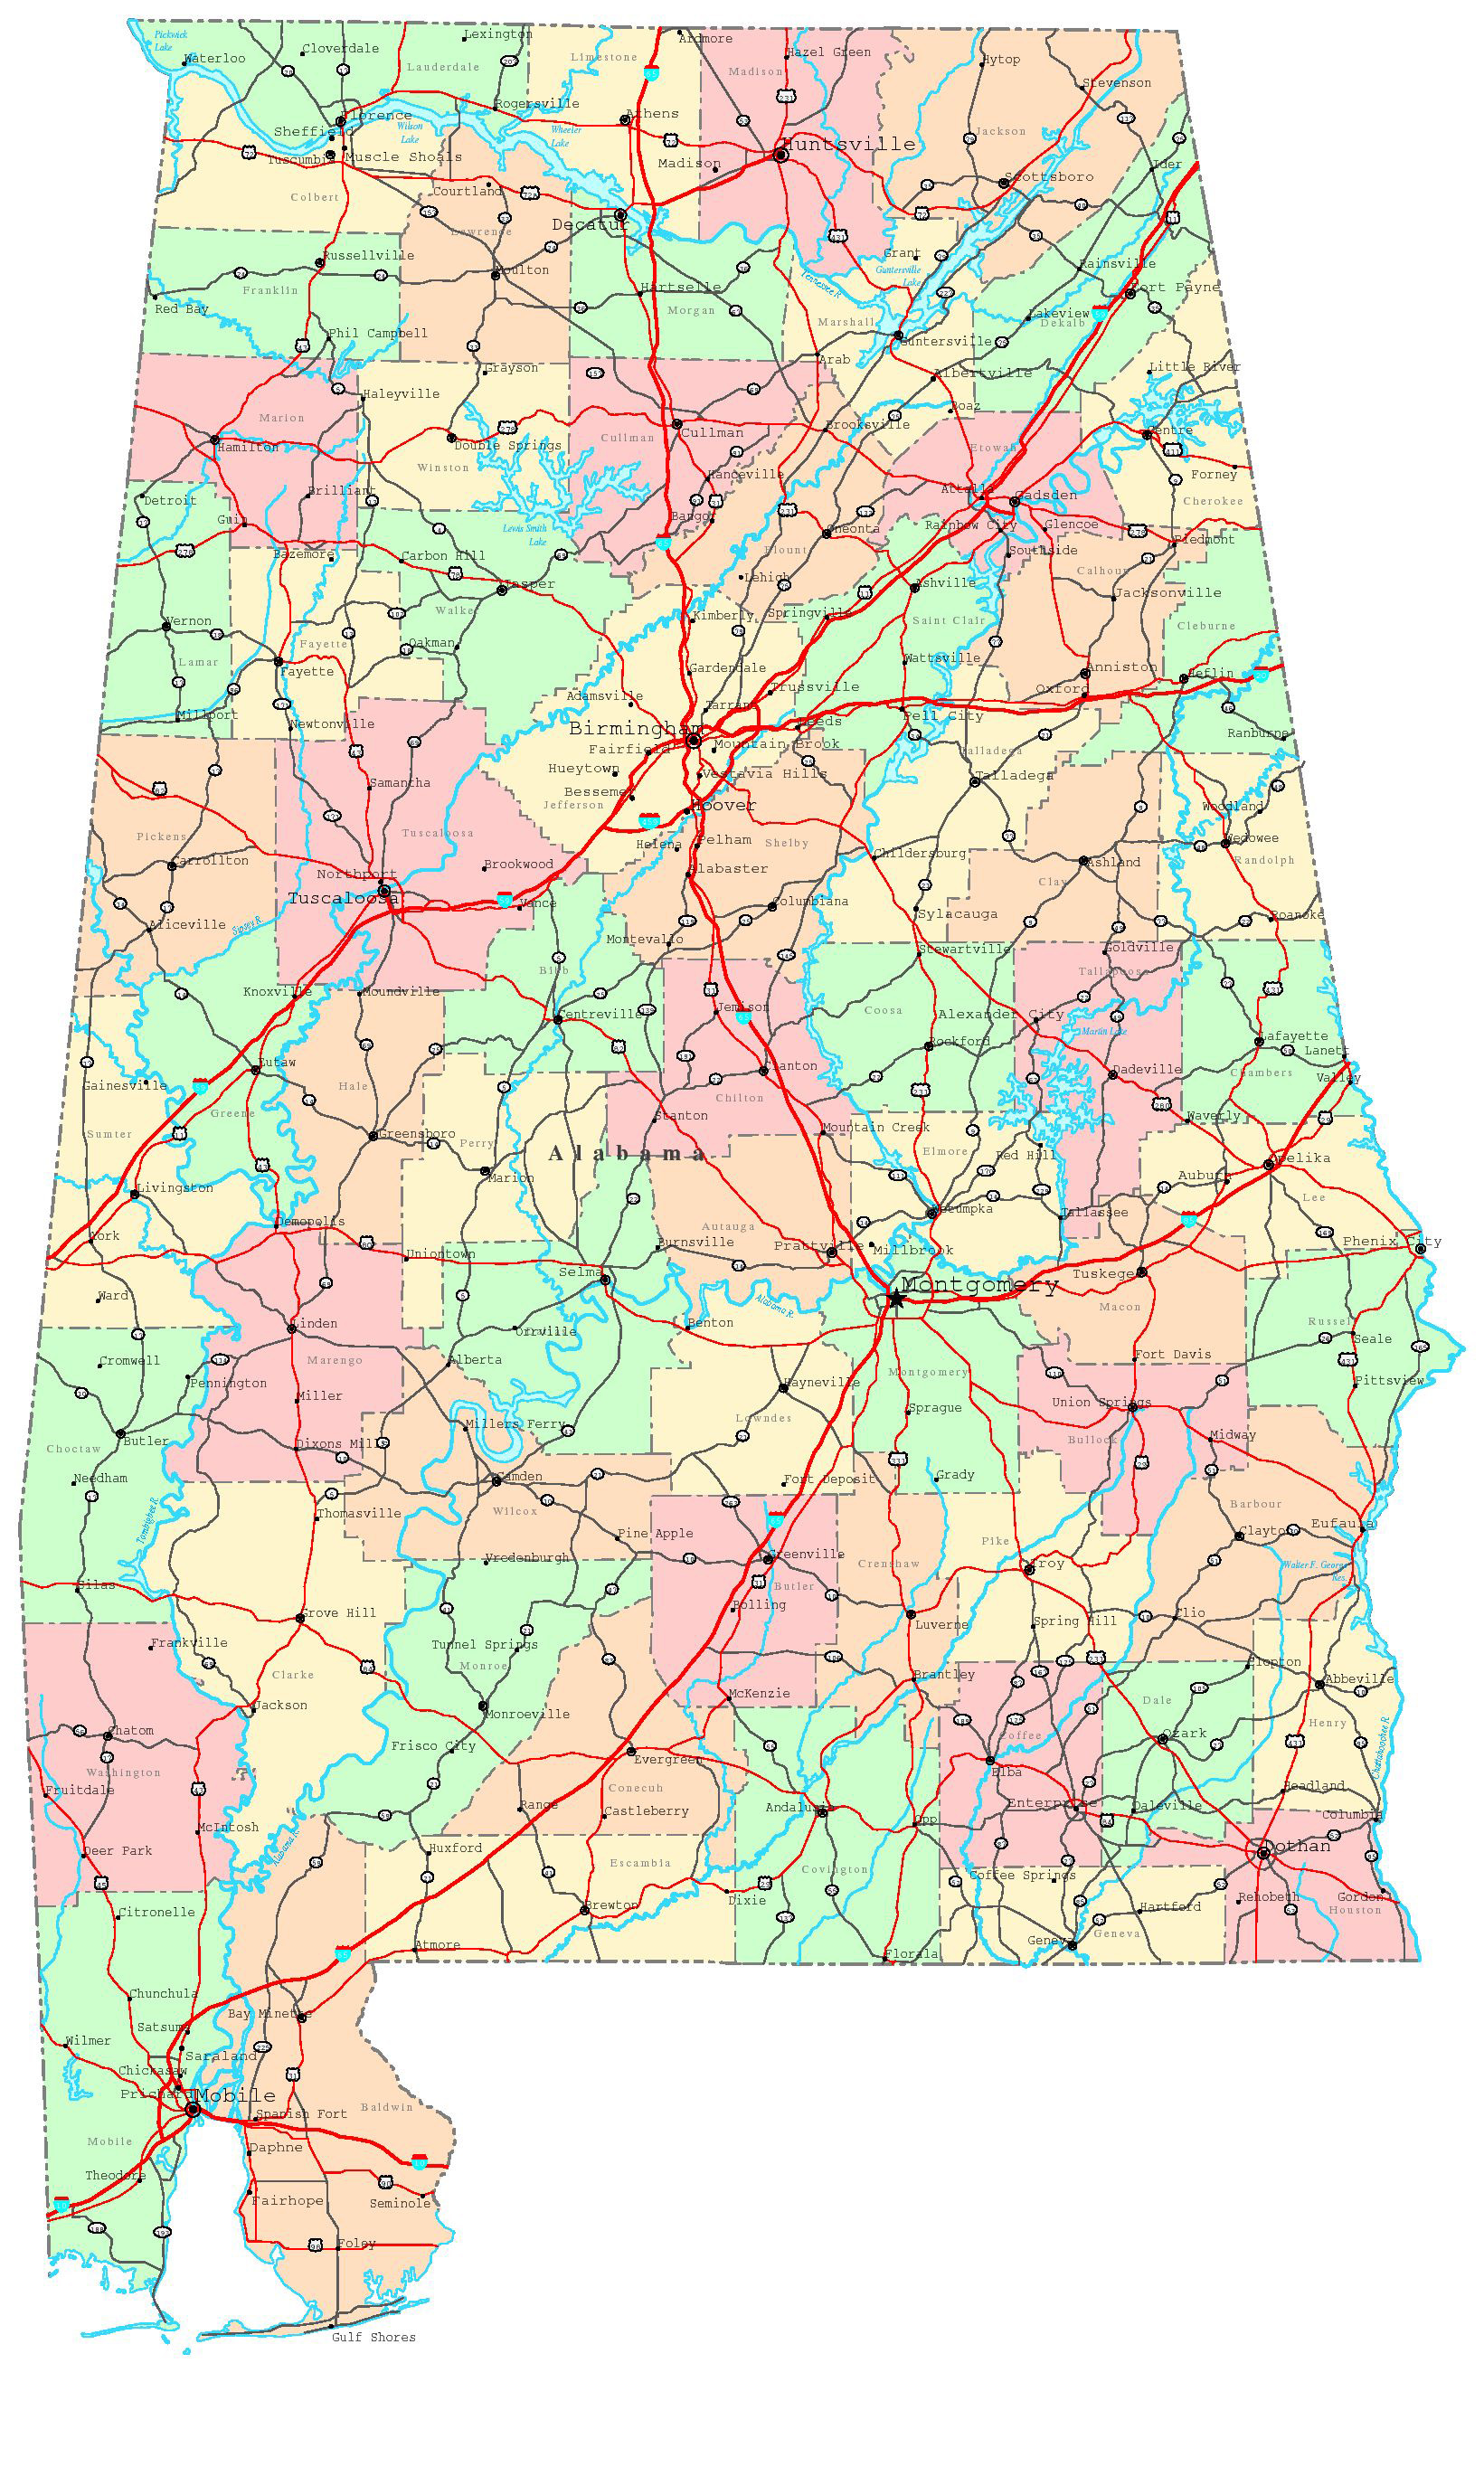 Detailed Administrative Map Of Alabama State Alabama State - Detailed map of alabama